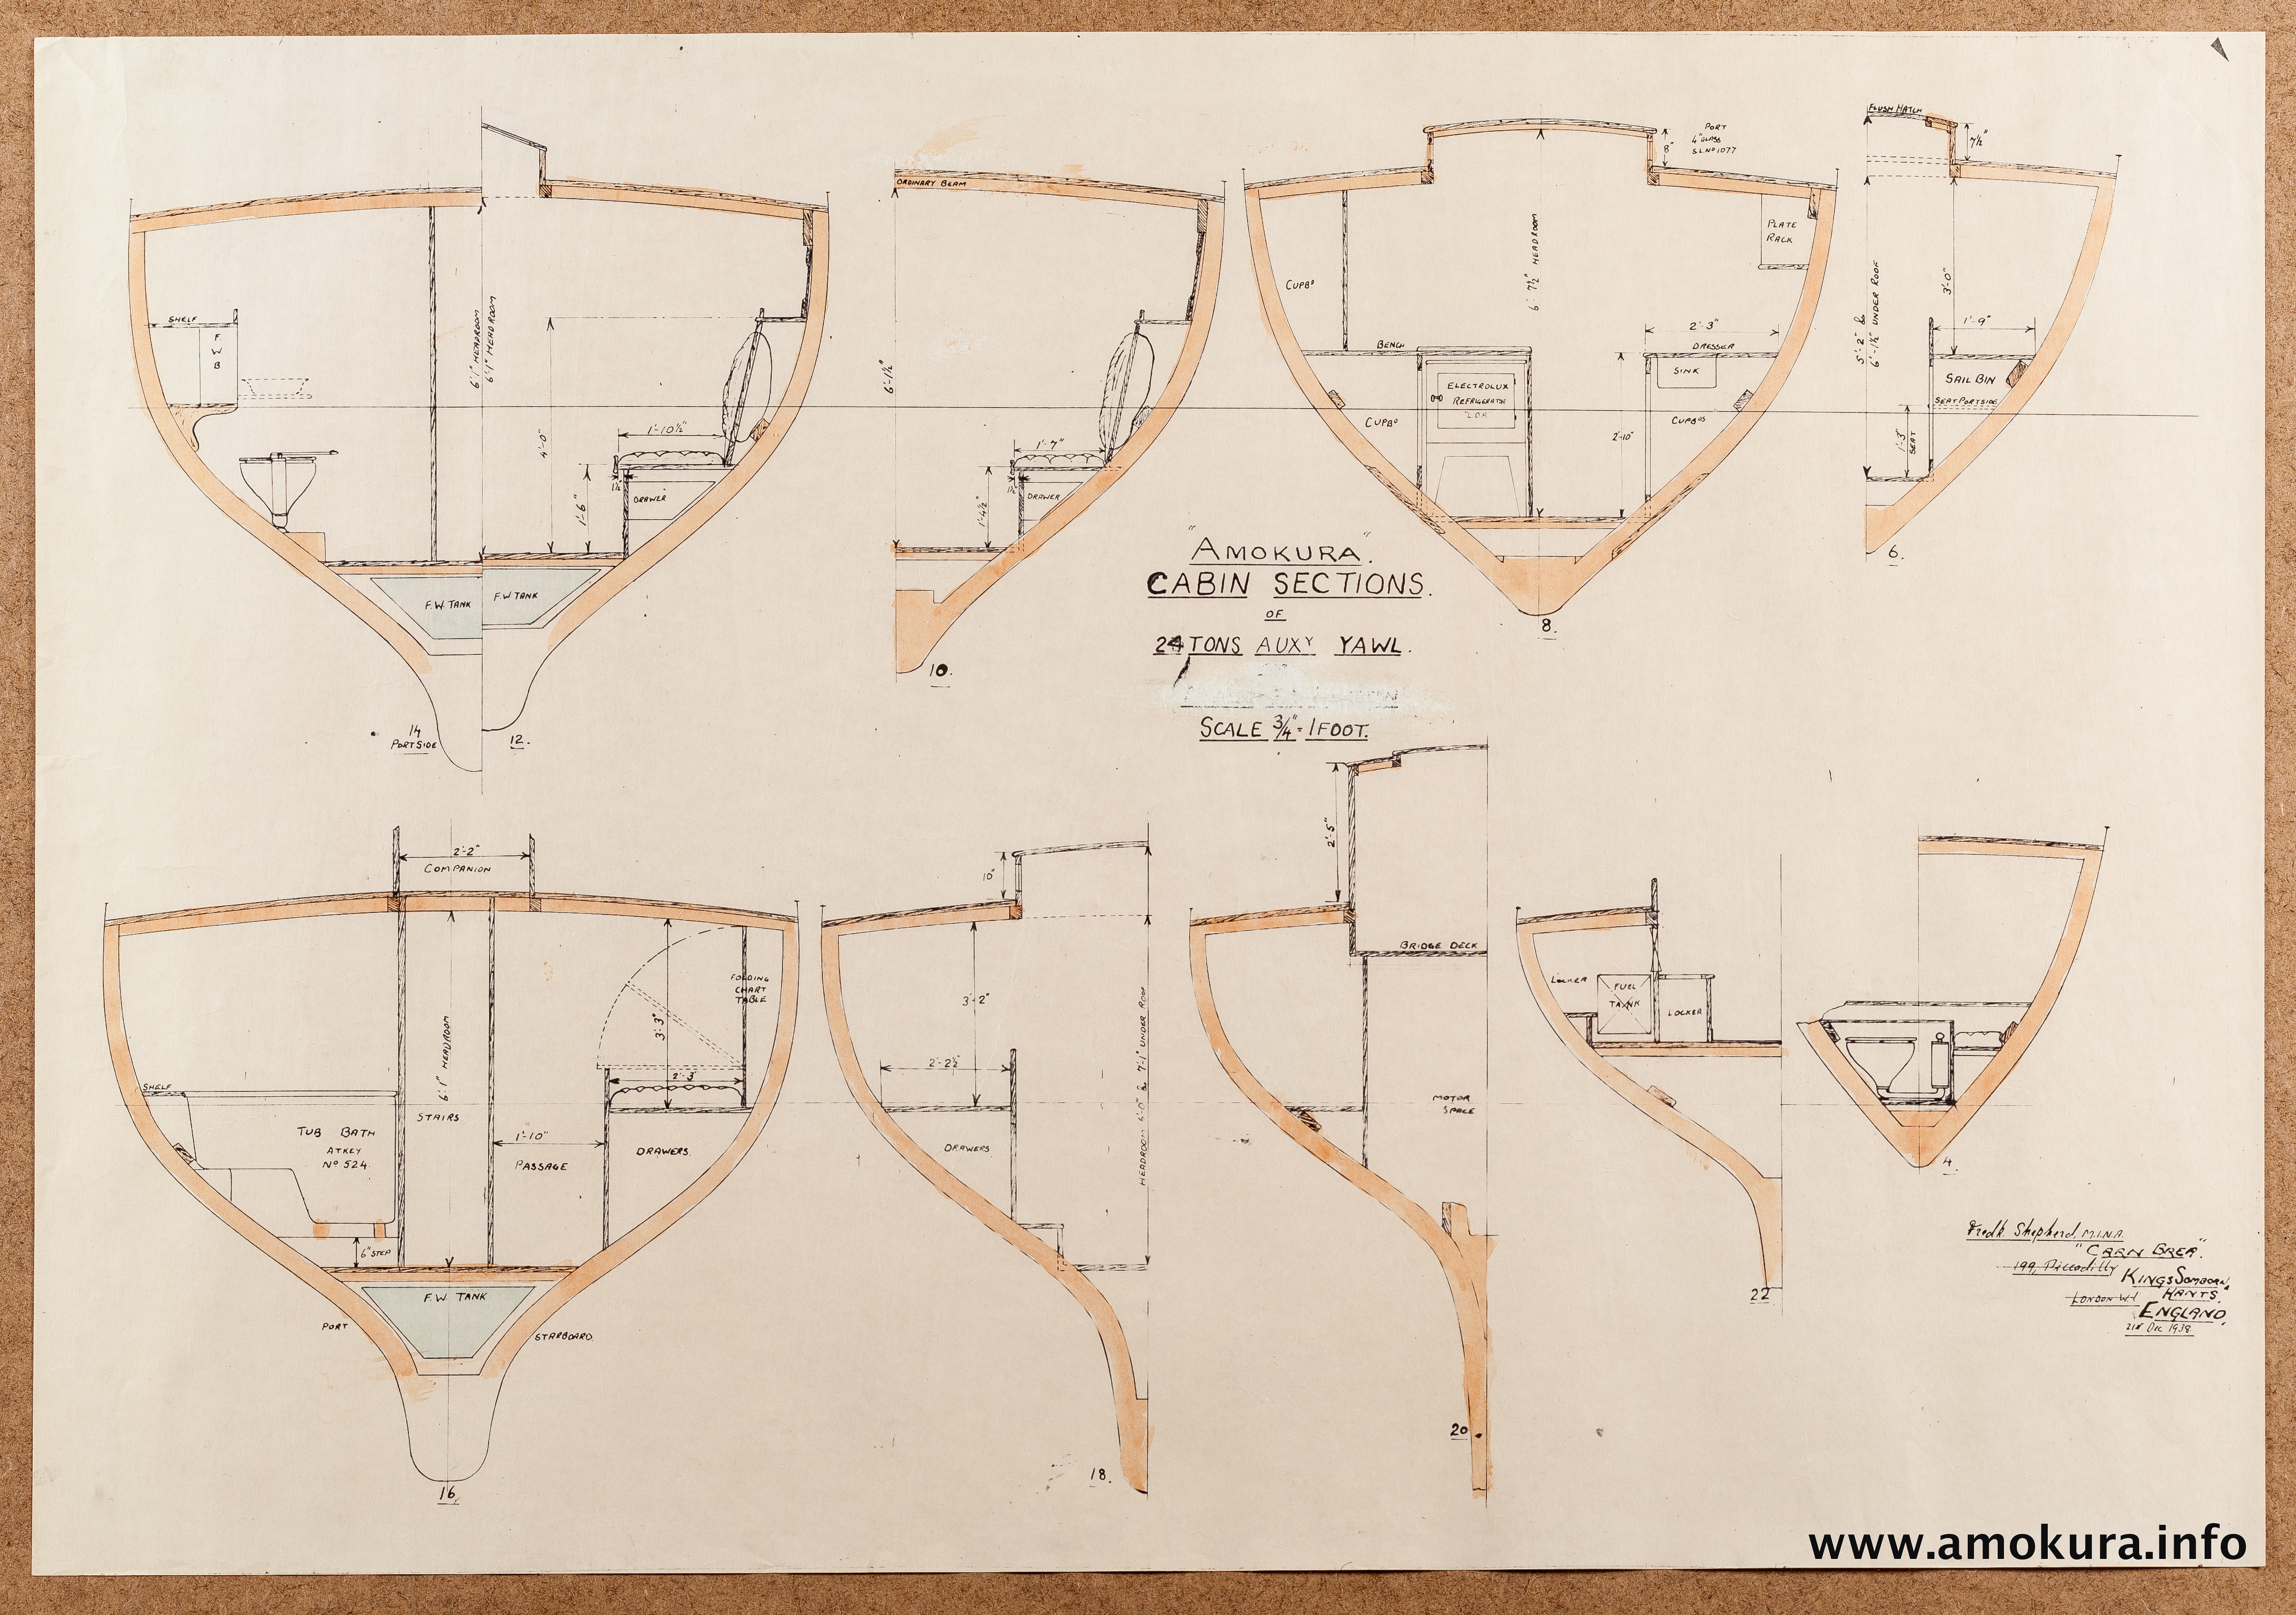 Cabin sections - hand coloured (1939)